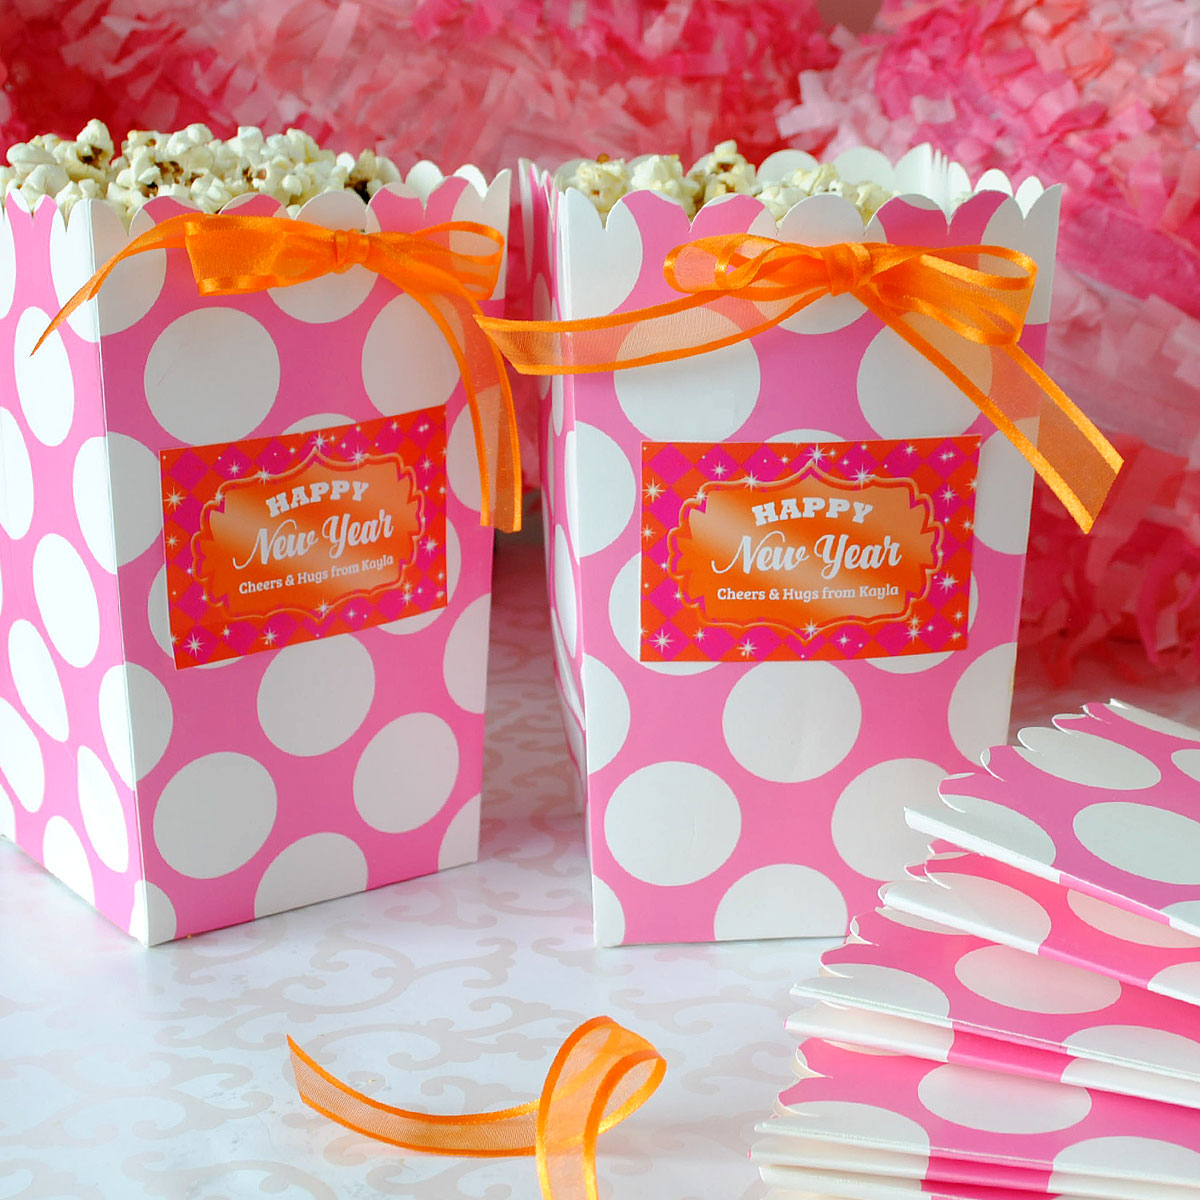 Custom party favor labels for popcorn boxes